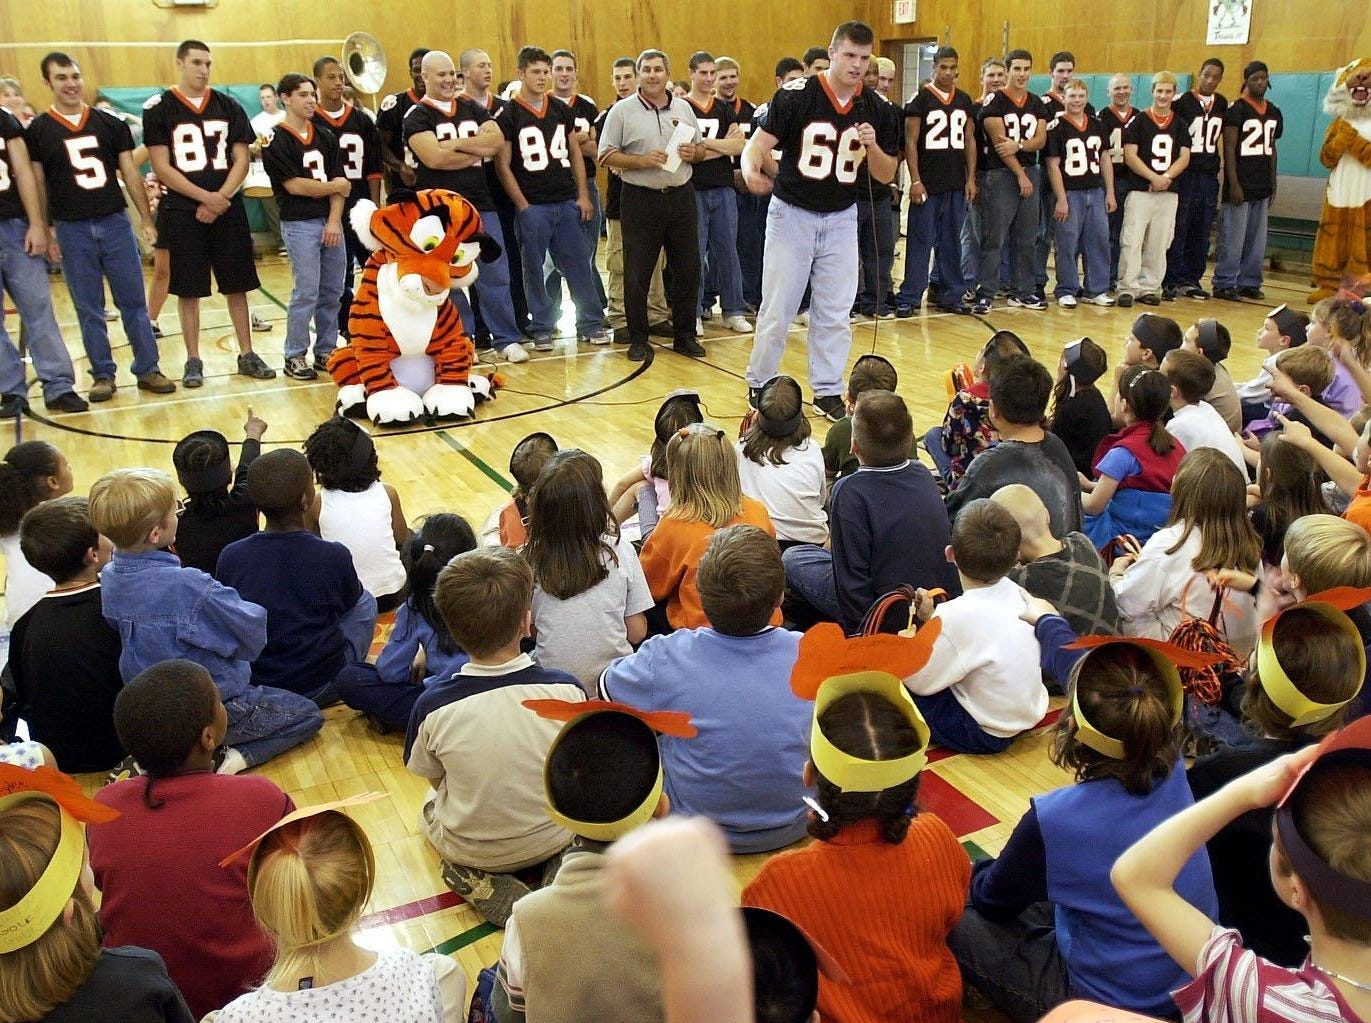 In 1999, Union-Endicott High School football Team Captain Dave Archer speaks to students during a pep rally held Friday at the Charles F. Johnson School. The rally before the traditional U-E/Vestal game has been held at the elementary school for 25 years.